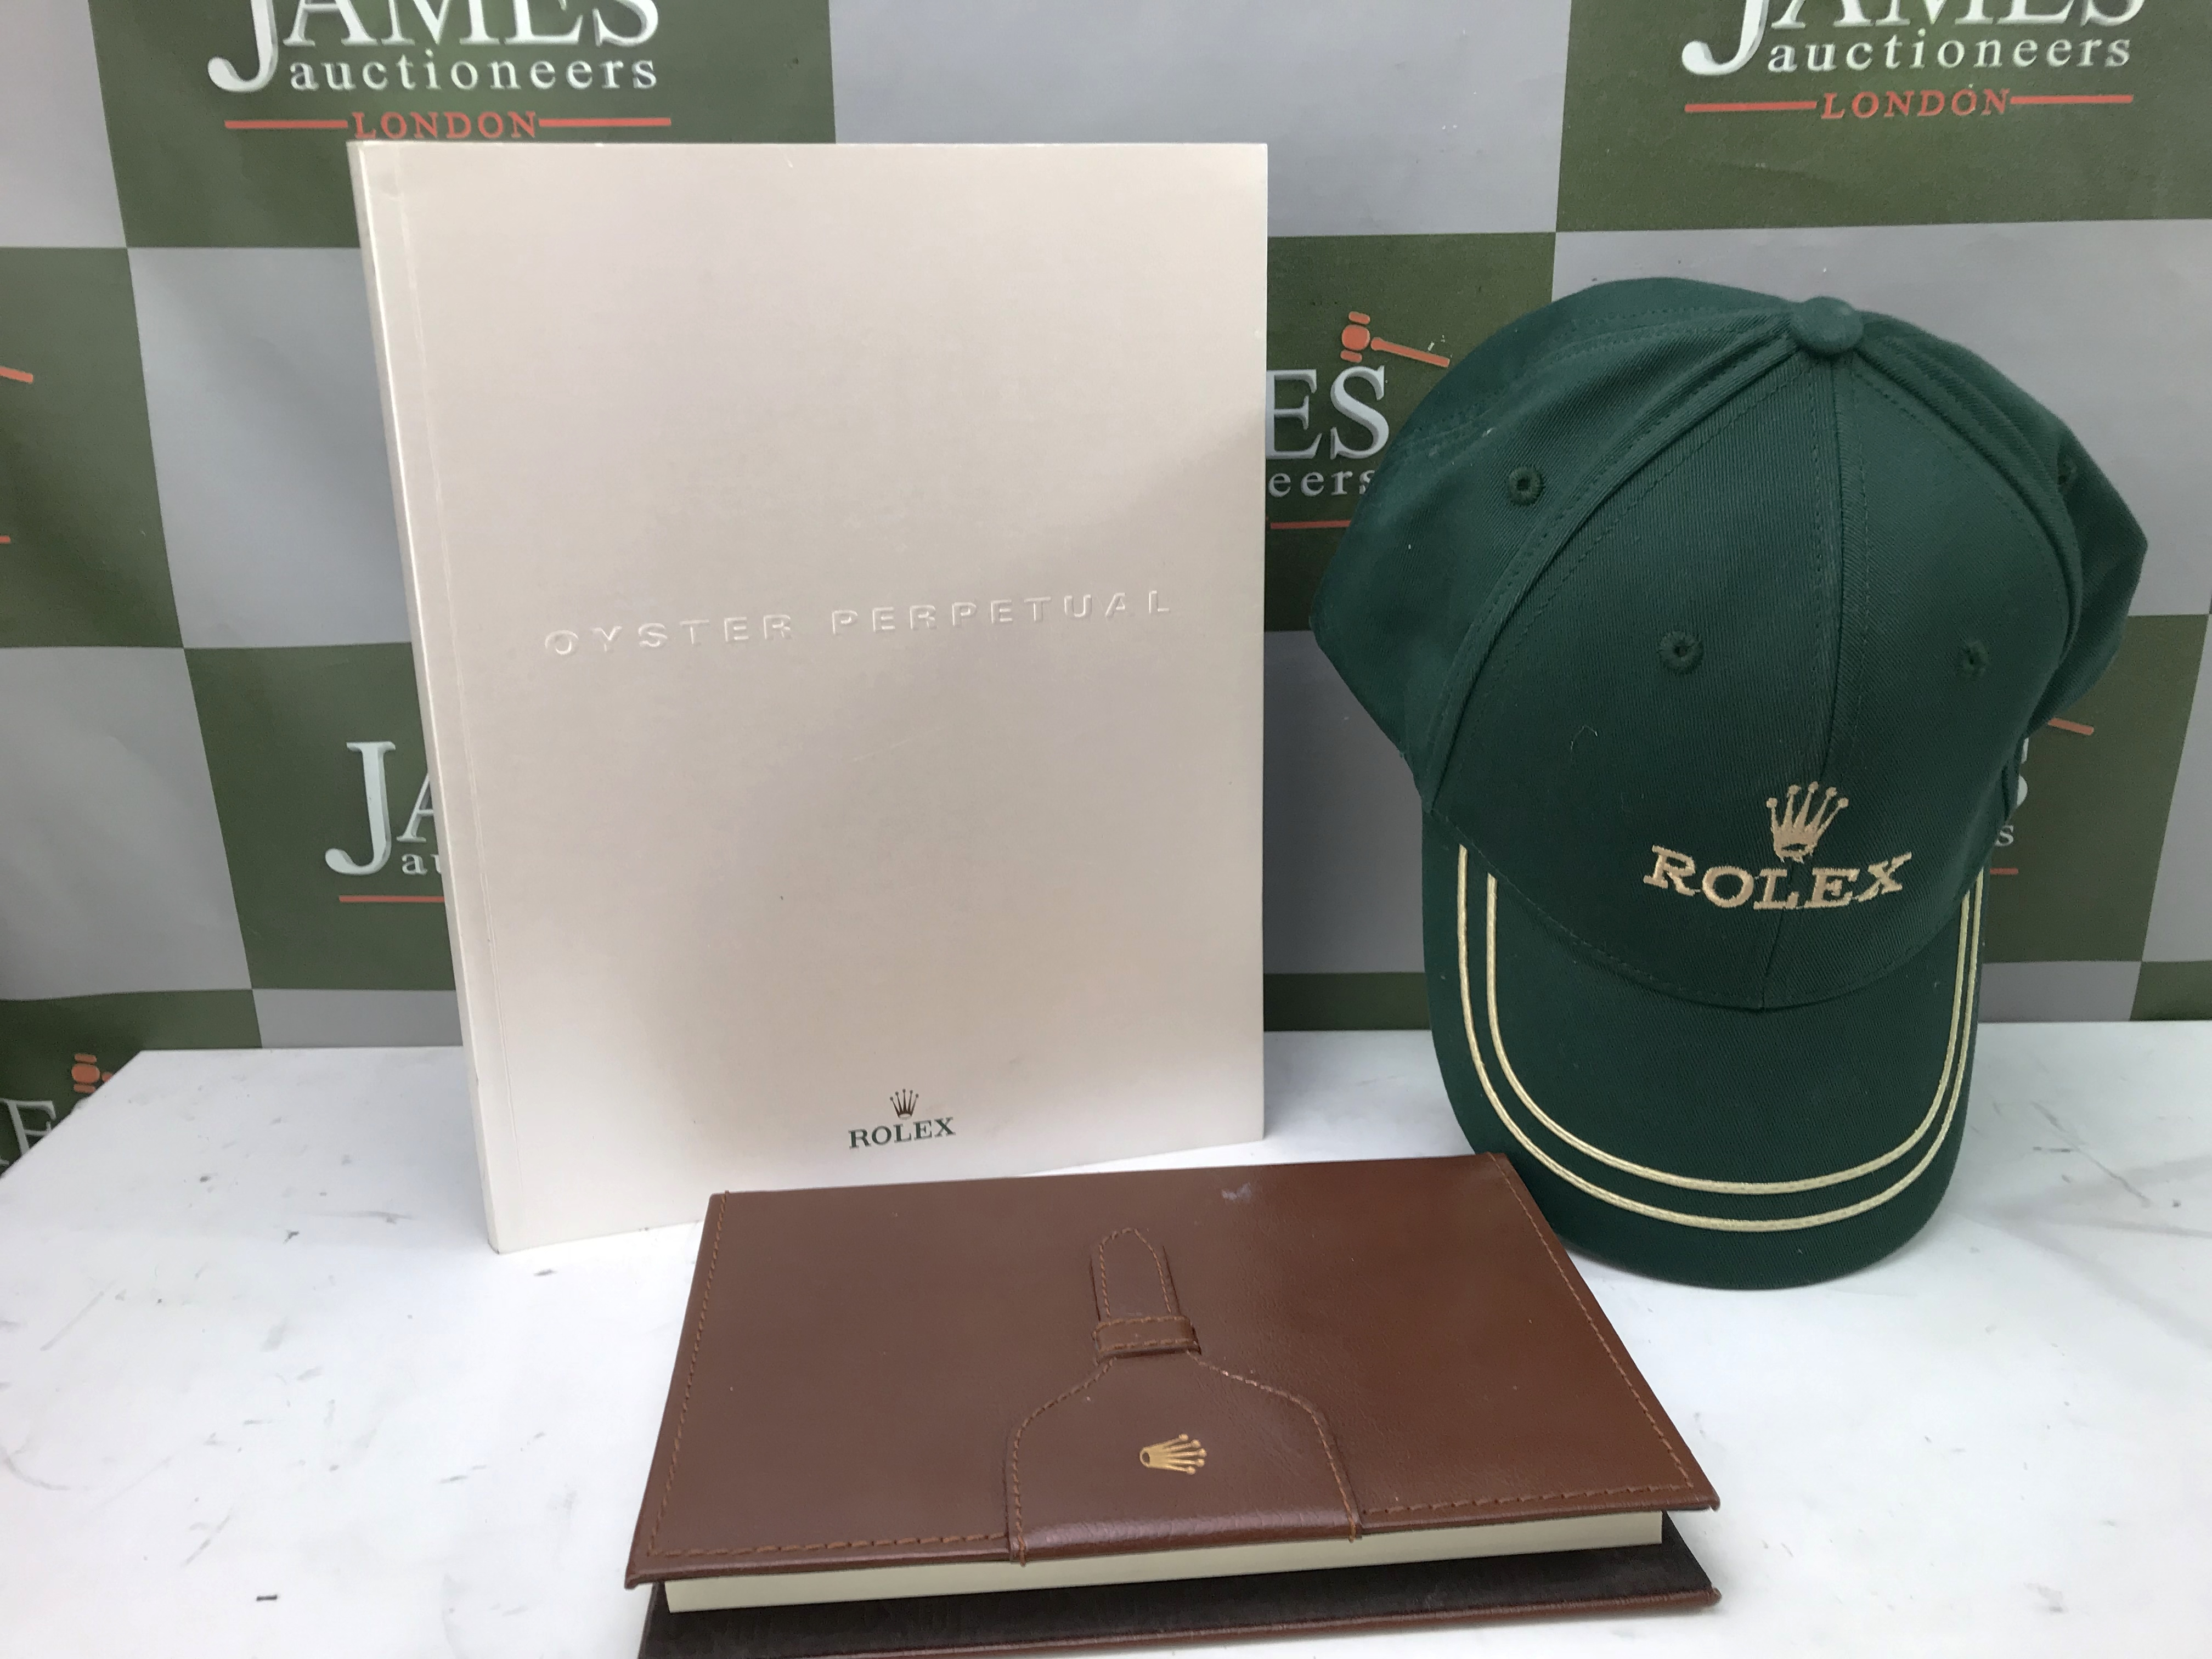 Lot 19 - Rolex Leather Notebook, Cap + 100 Page Oyster Perpetual Book